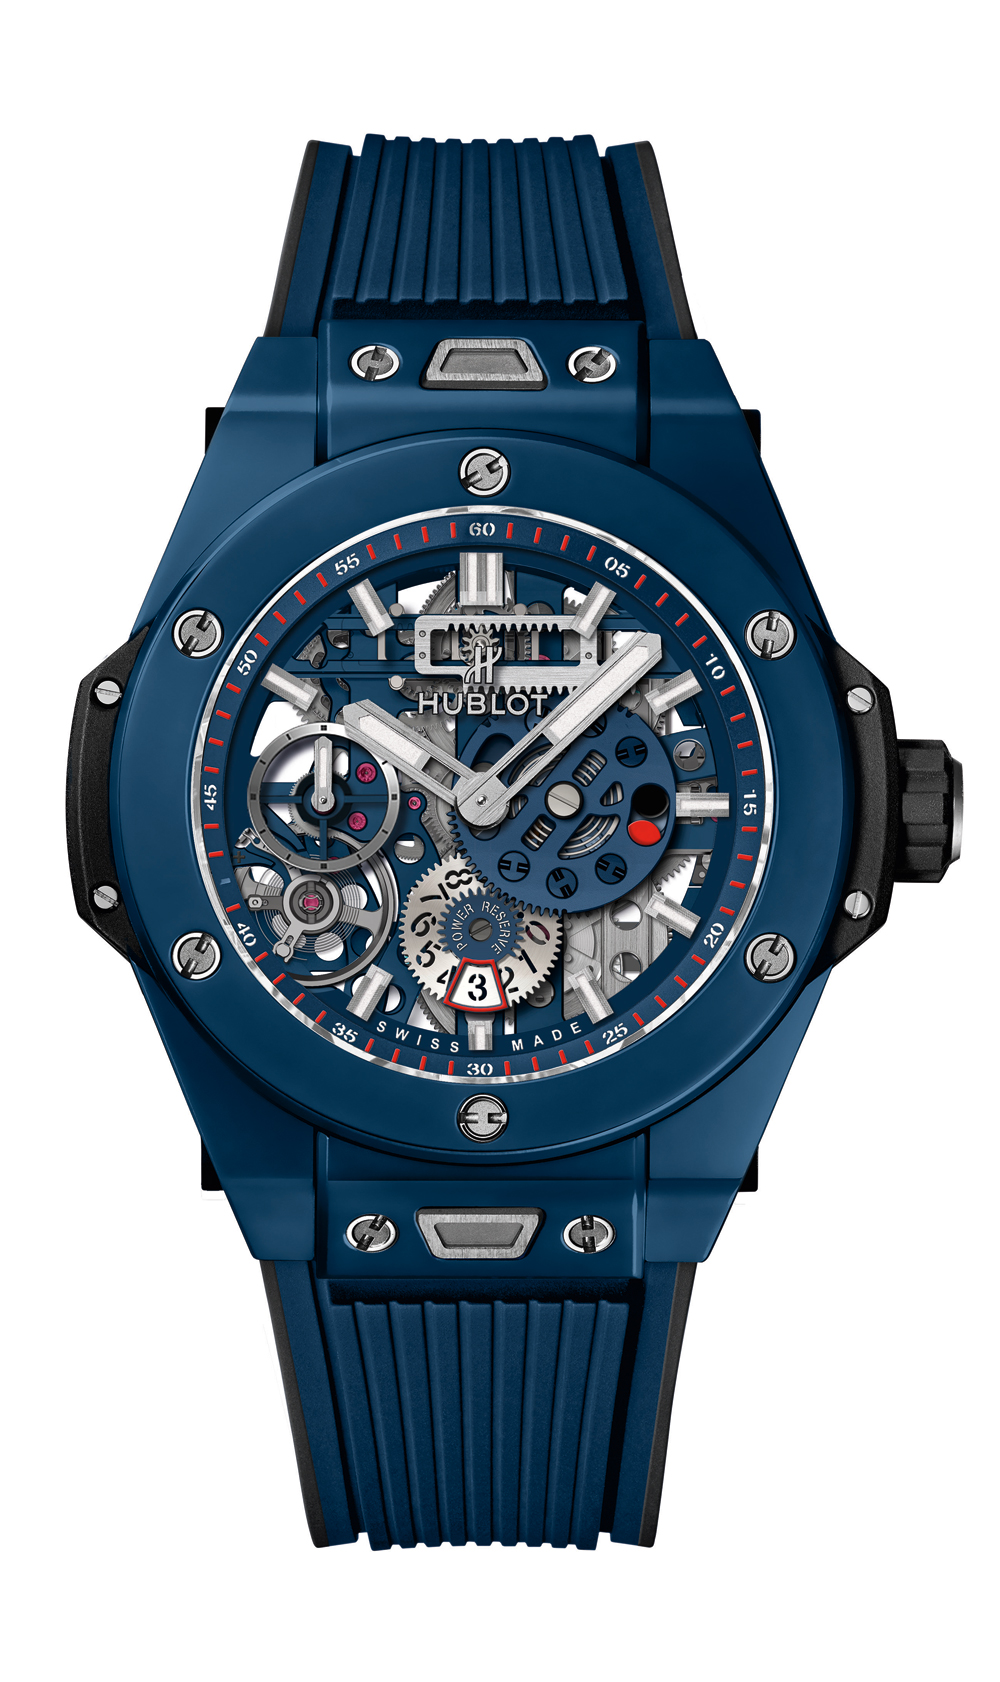 Reloj Hublot Big Bang Meca-10 10 Day Power Reserve Blue Ceramic